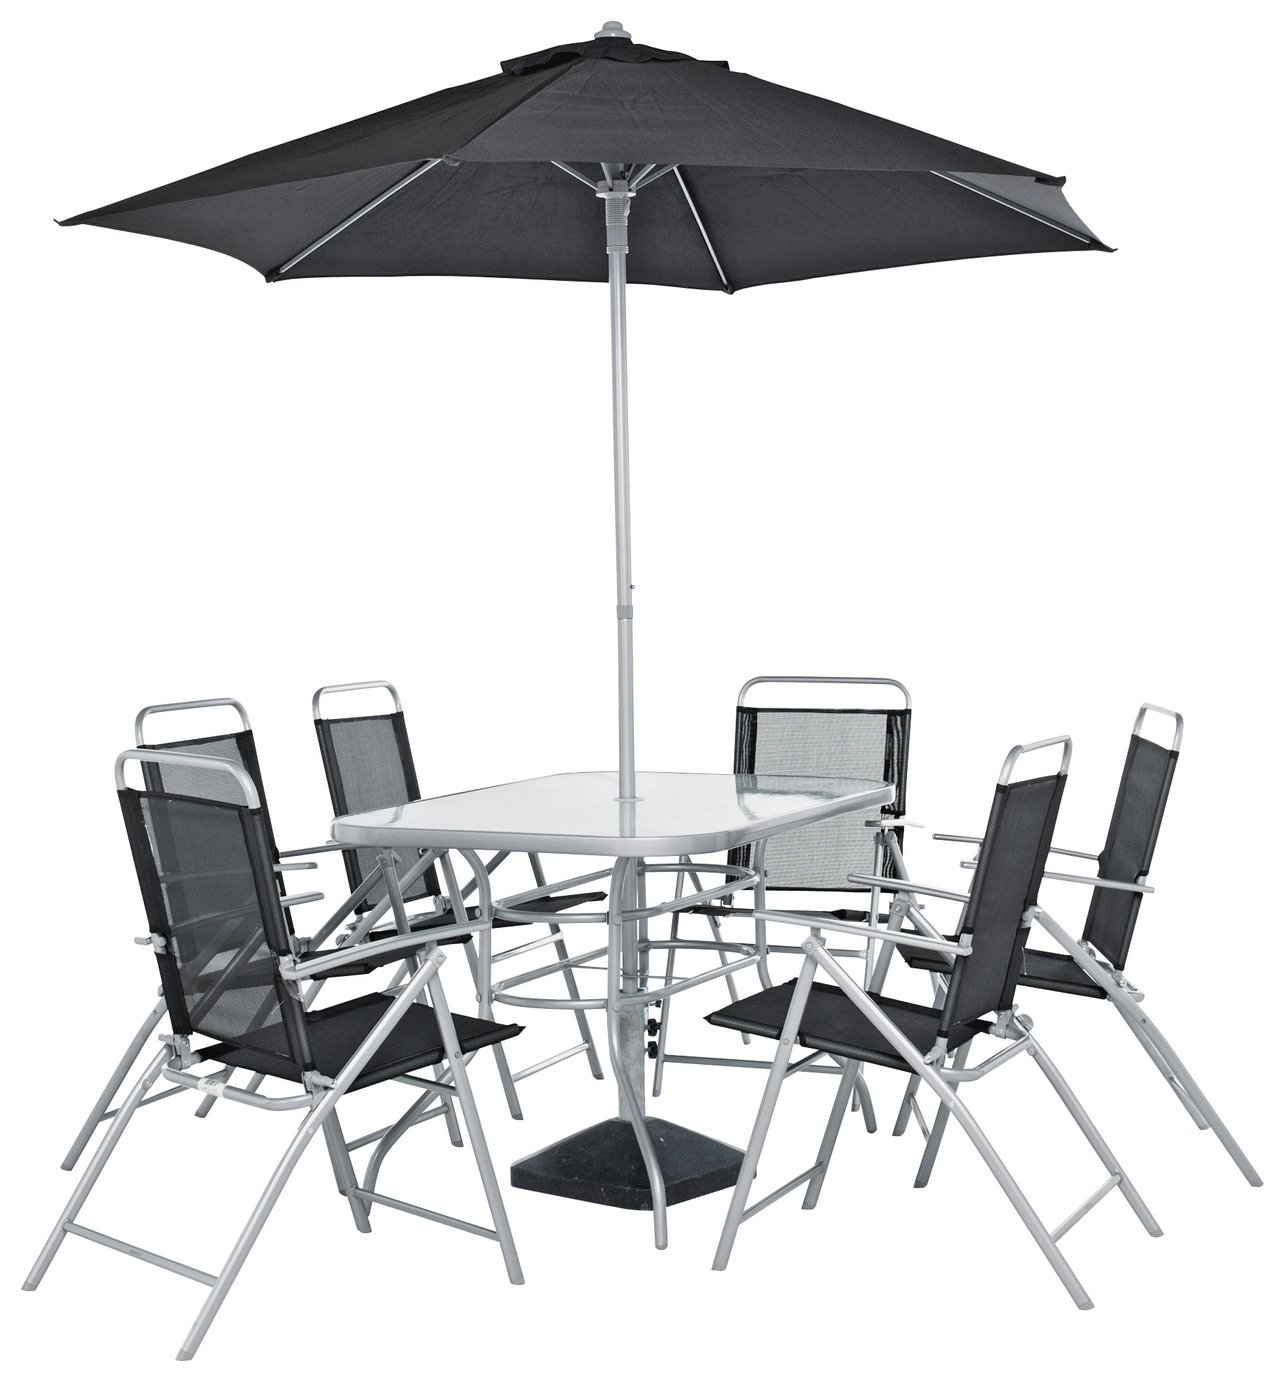 sale on home pacific 6 seater patio furniture set. Black Bedroom Furniture Sets. Home Design Ideas